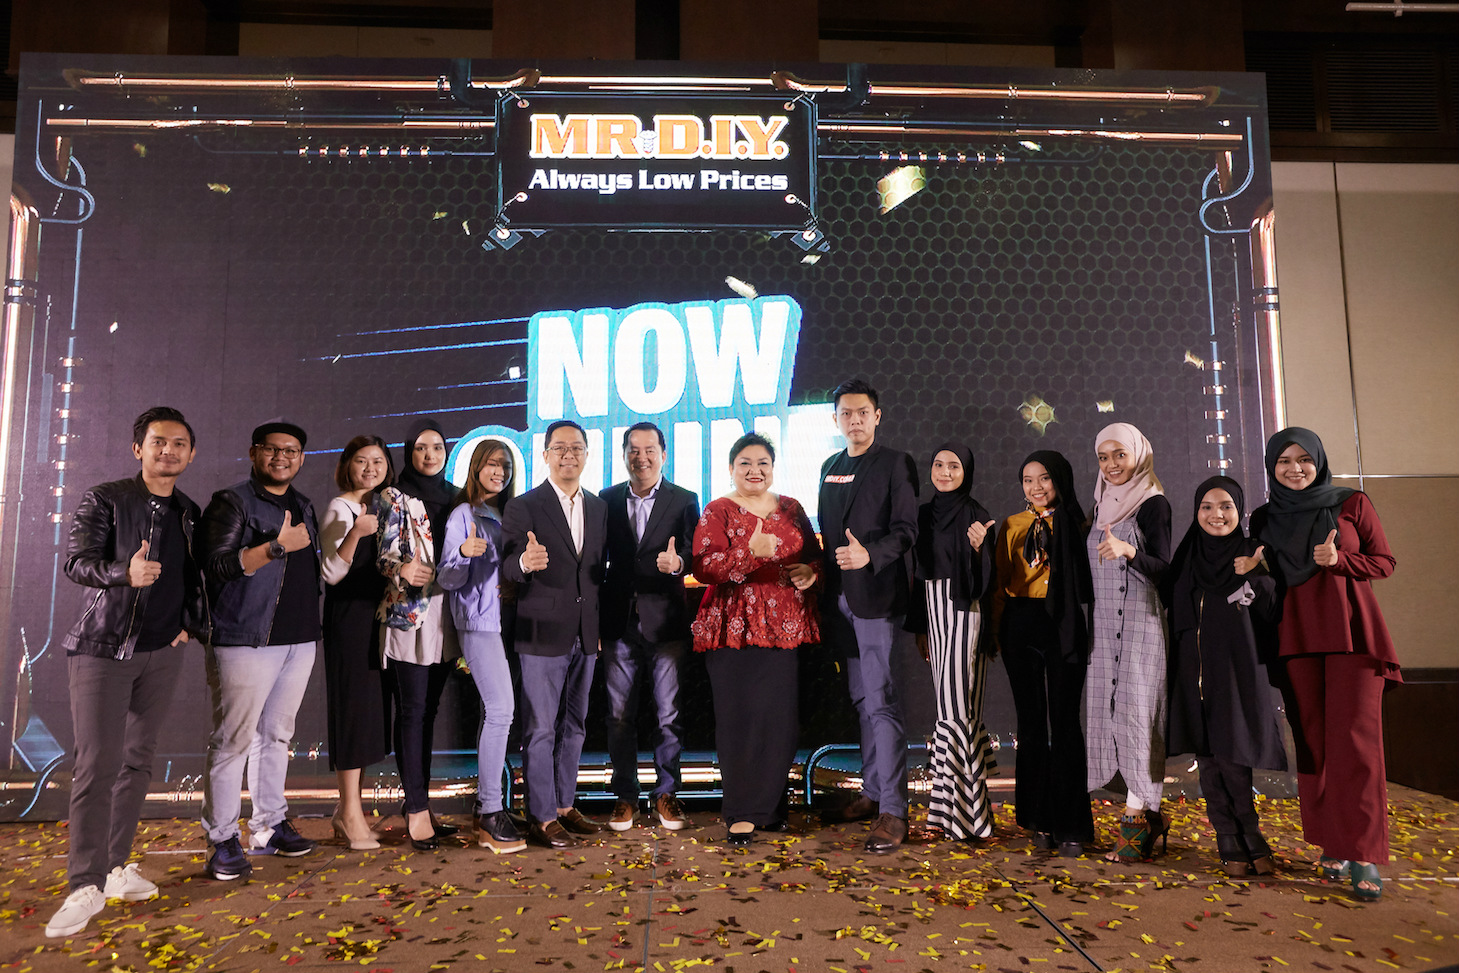 VIP, Duta dan Influencers